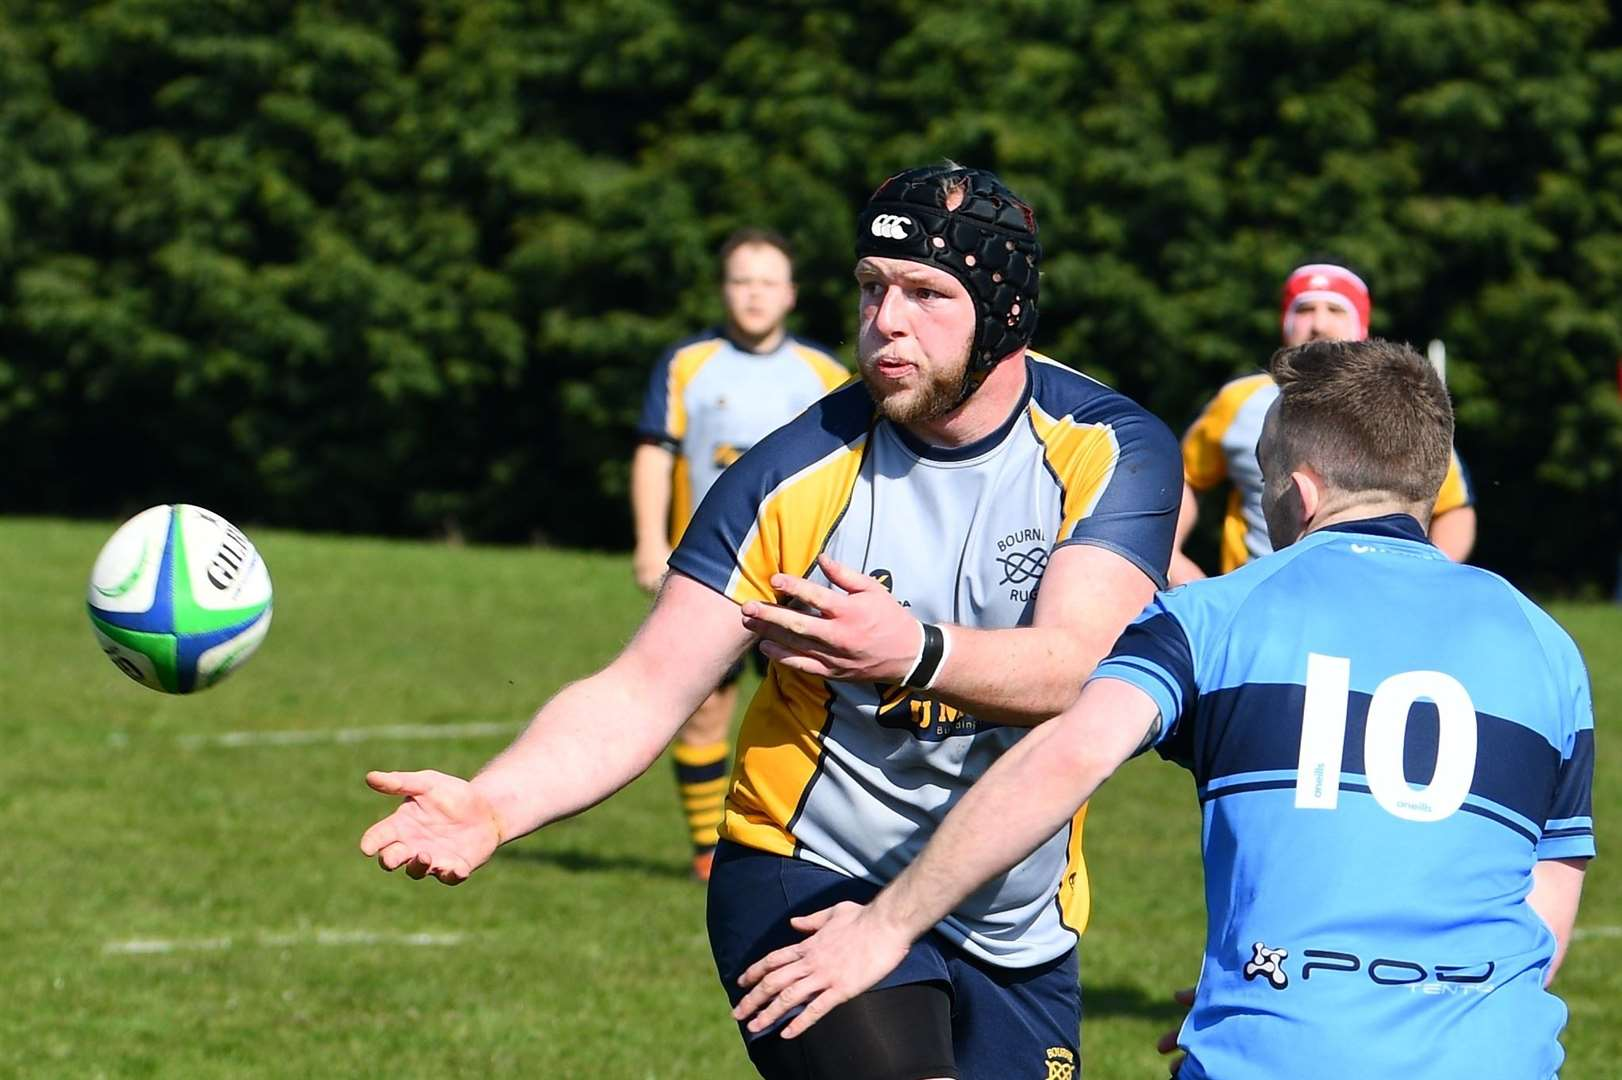 Bourne were 73-7 victors over St Neots on Saturday. Photo: Alan Hancock (8605653)